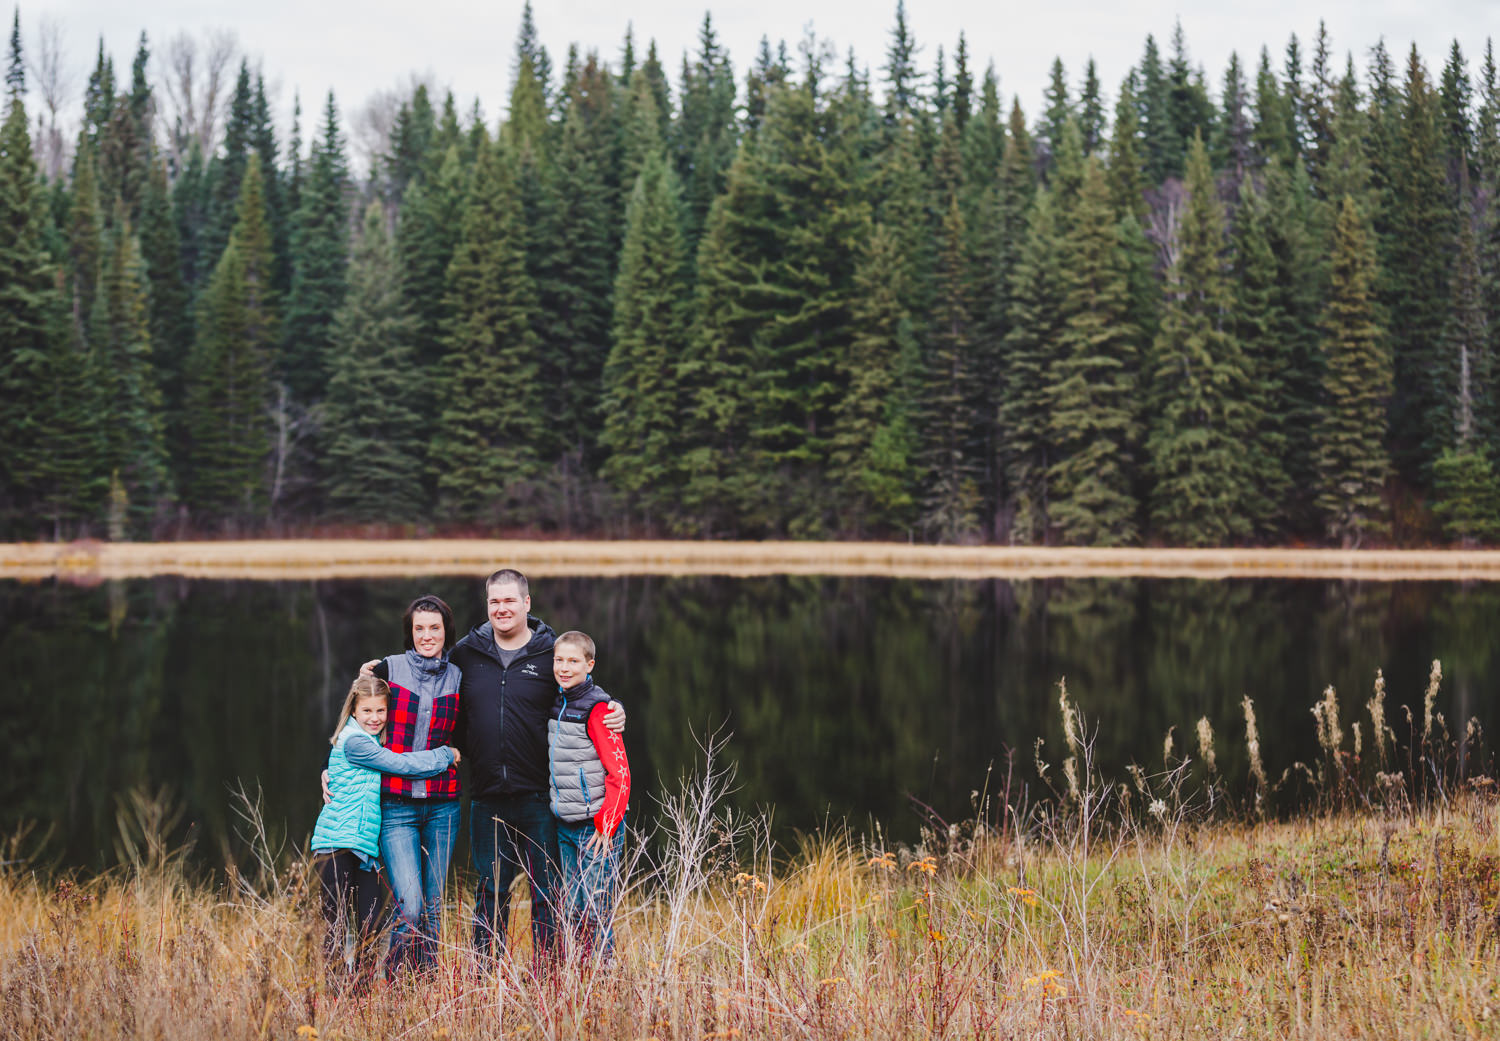 quesnel-family-photographers-quesnel-family-photography-cotton-wood-river-quesnel-bc-kelowna-photographer-julie-dorge (7 of 48).jpg